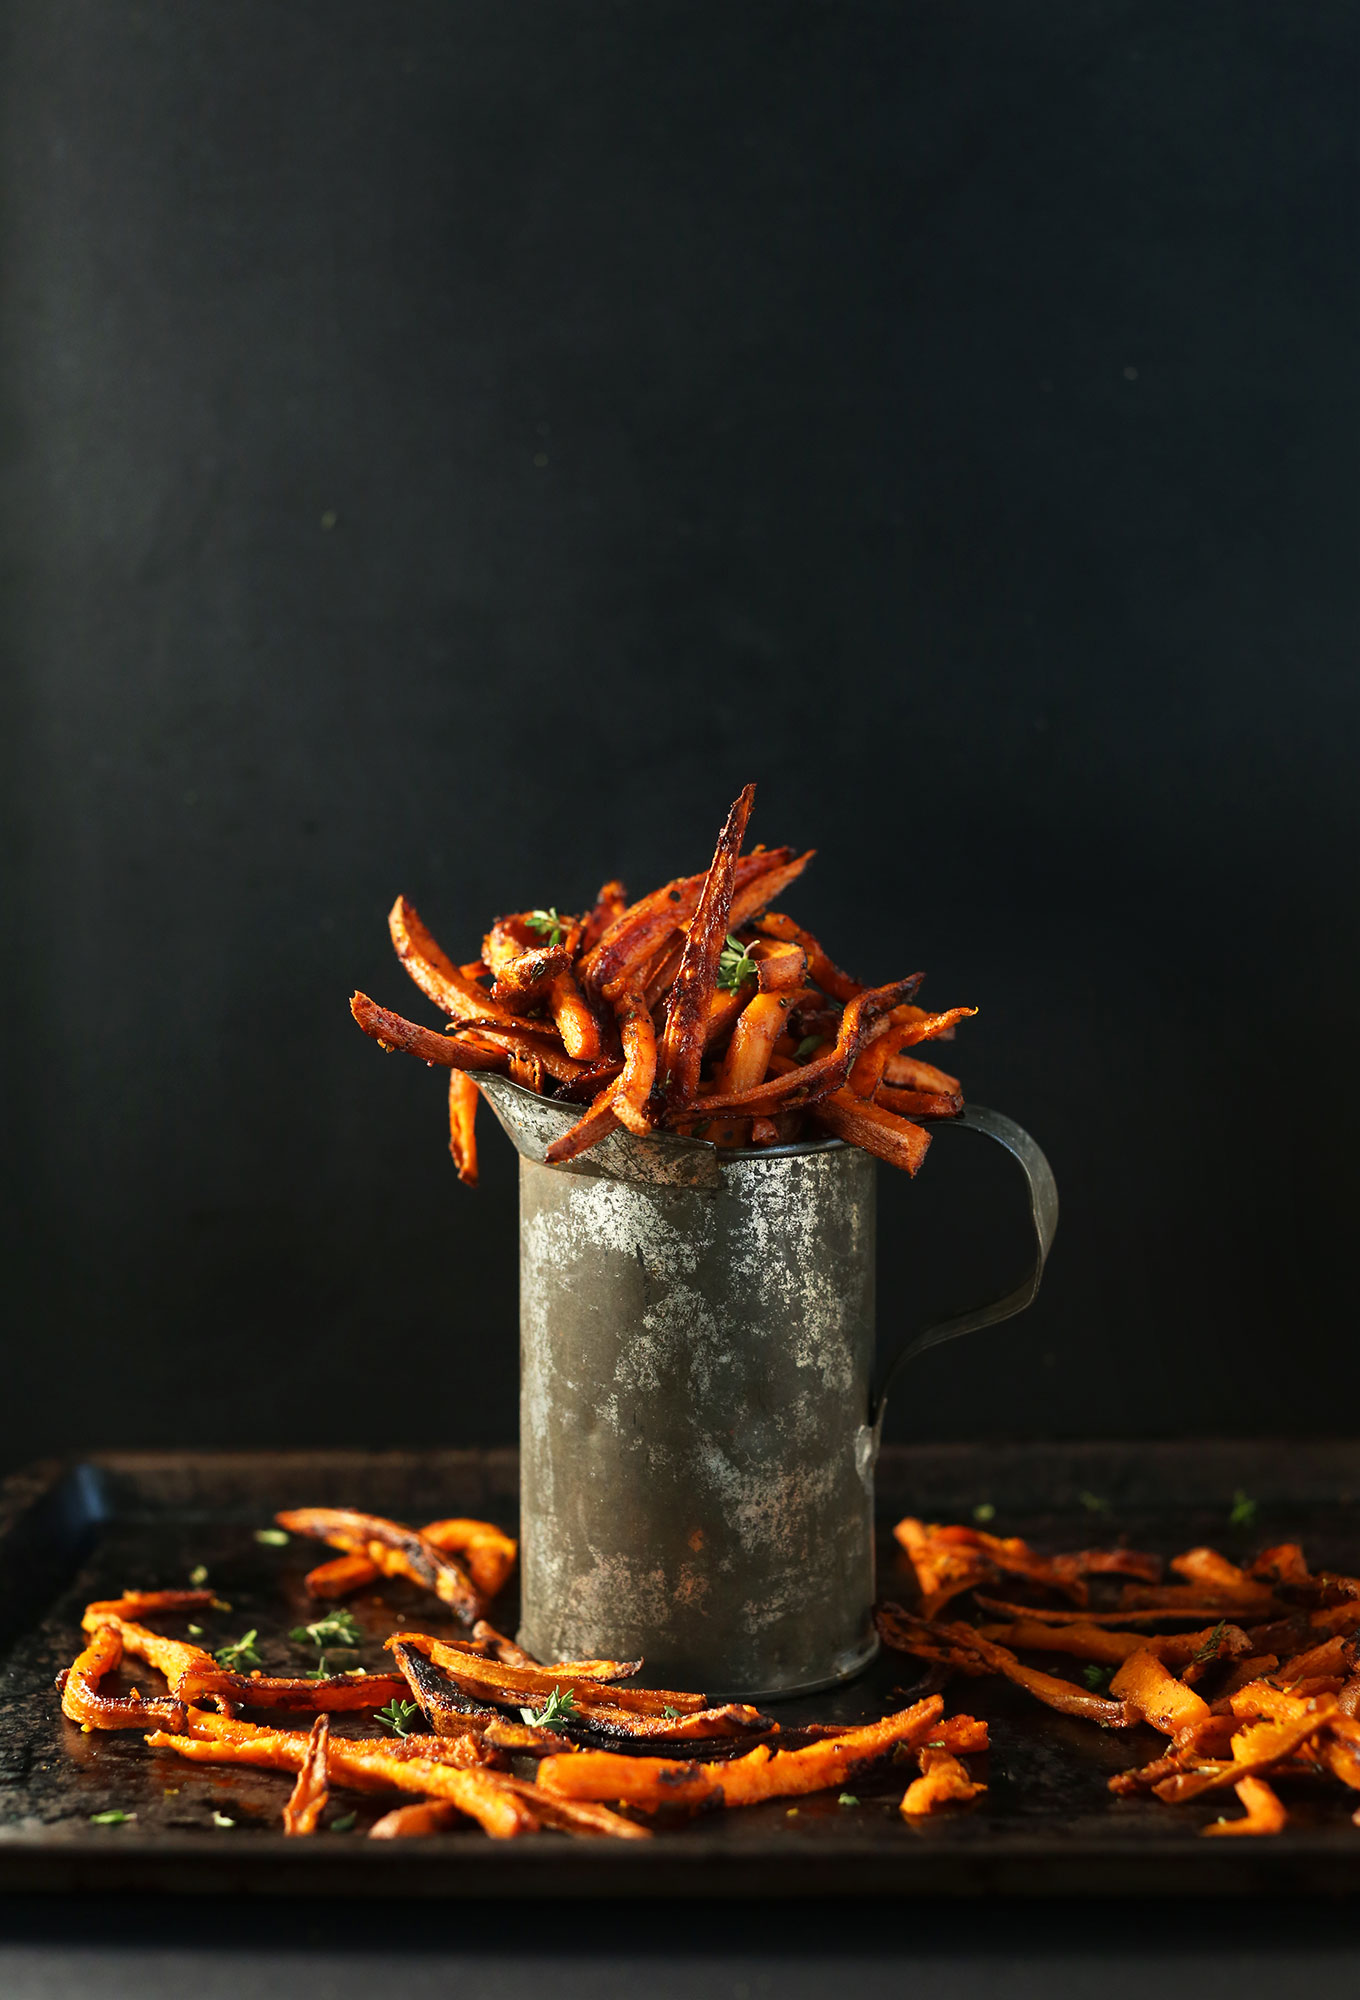 Freshly baked Sweet Potato Fries made with cajun spices